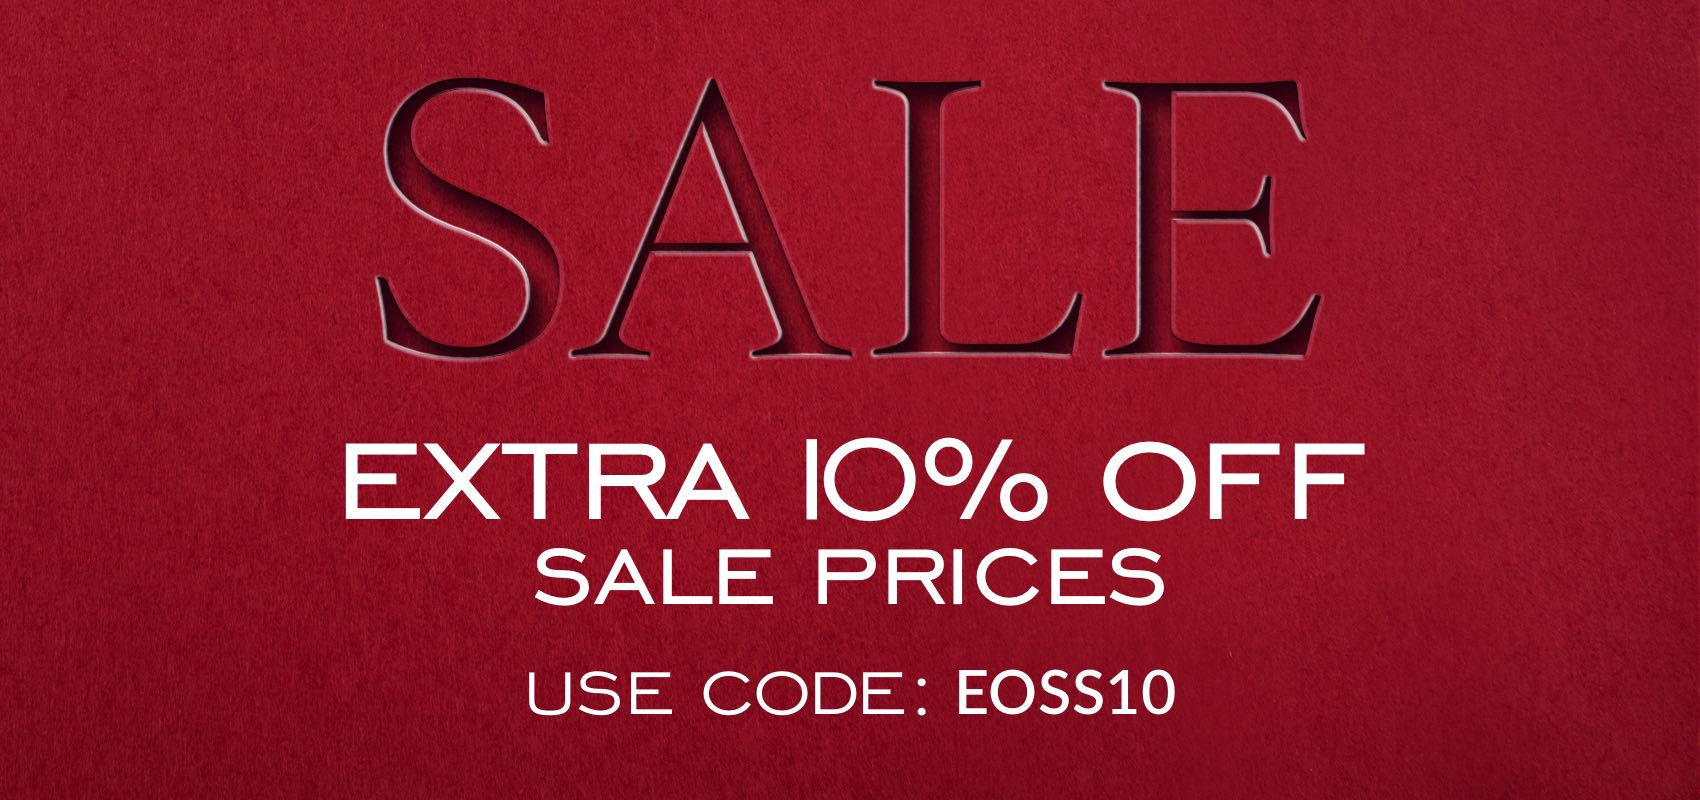 Sale extra 10% off sale prices use code EOSS10